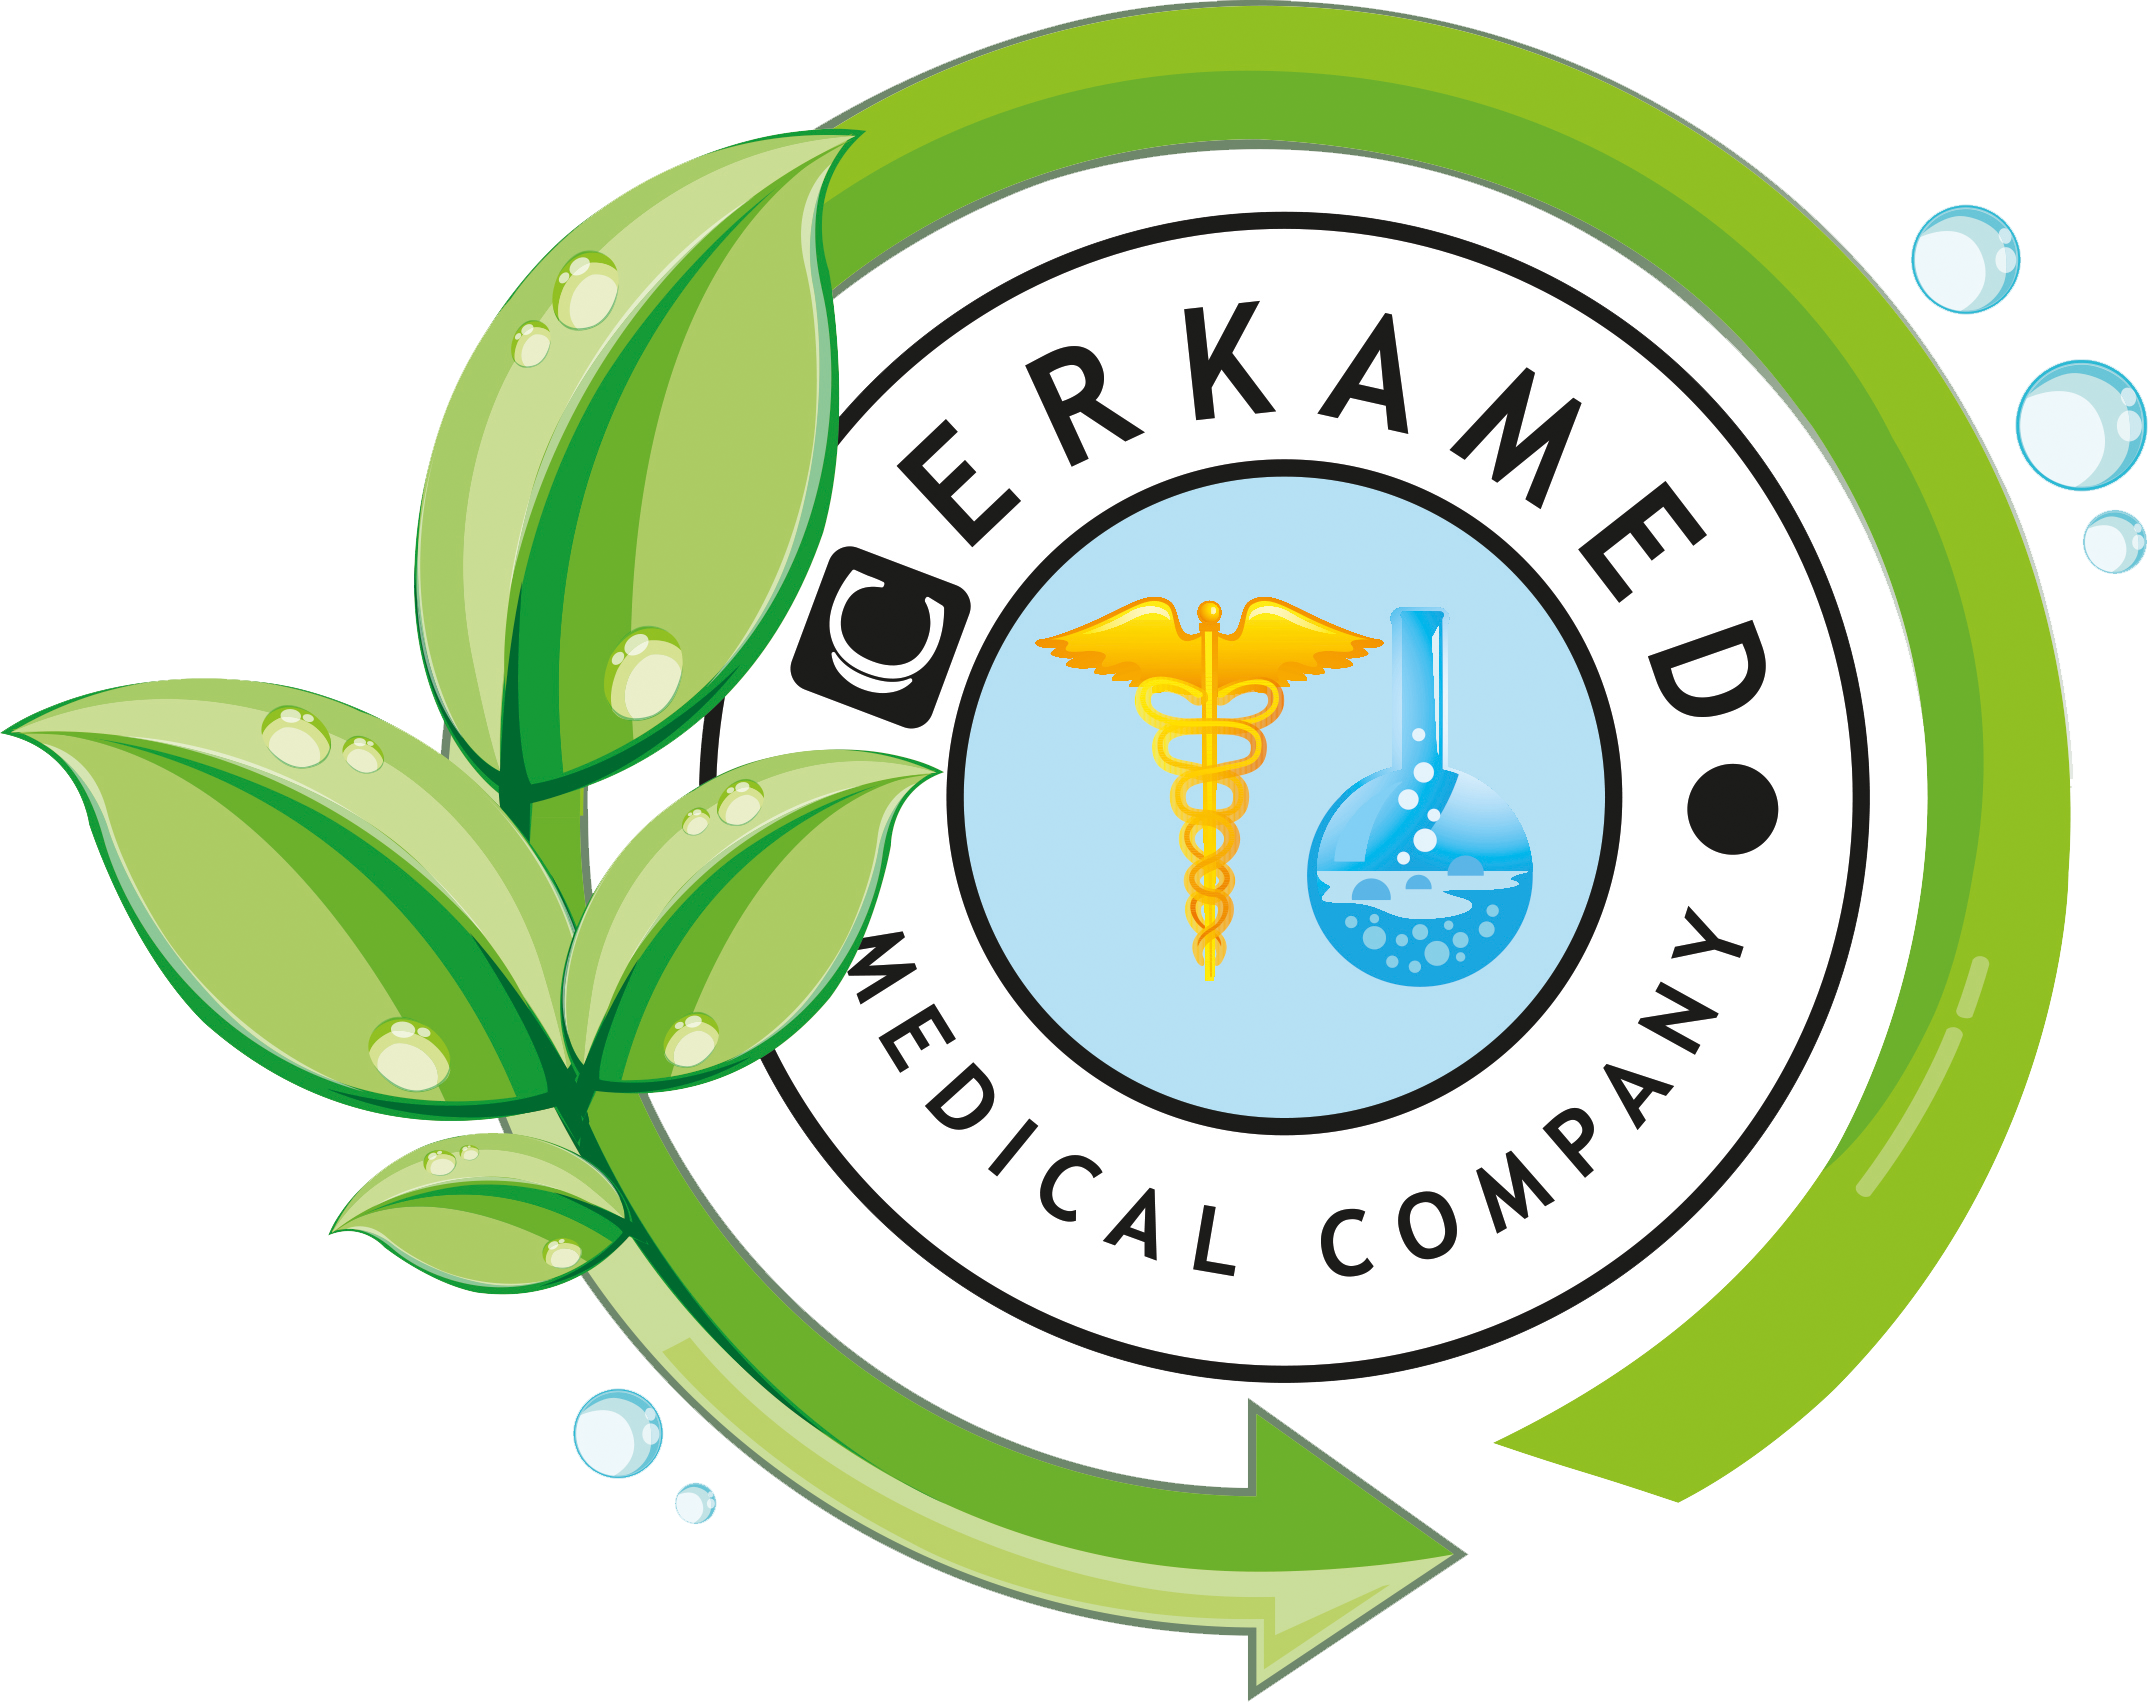 CERKAMED MEDICAL COMPANY